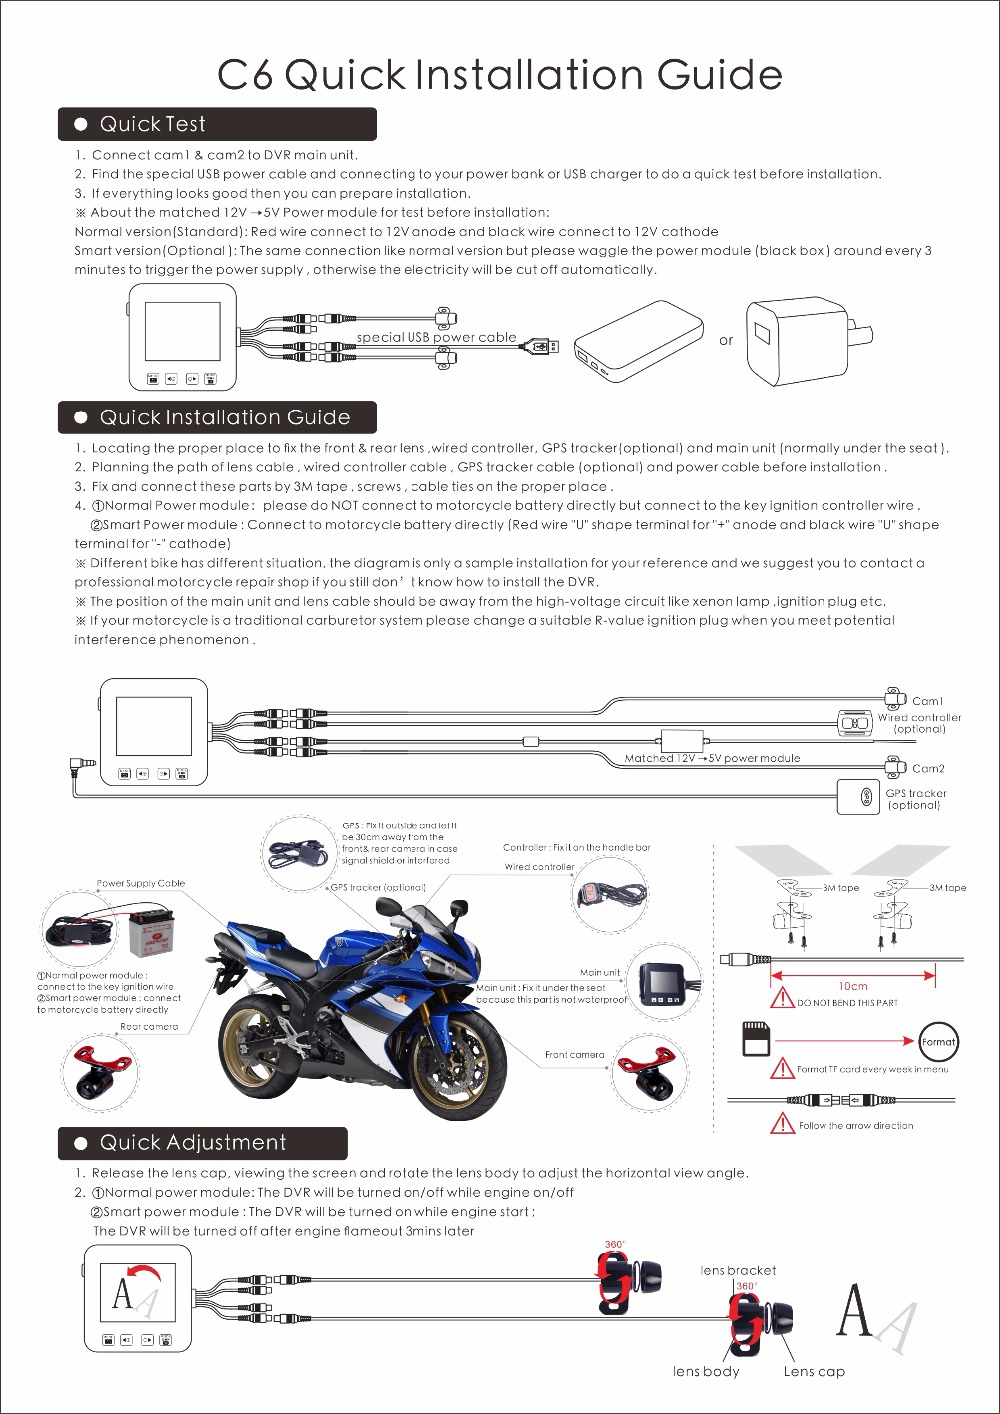 Mini Size Dual Lens Hd 720p C6 Wired Remote Control Motorcycle Dvr Diagram Controller And Gps Antenna Are Optional Device